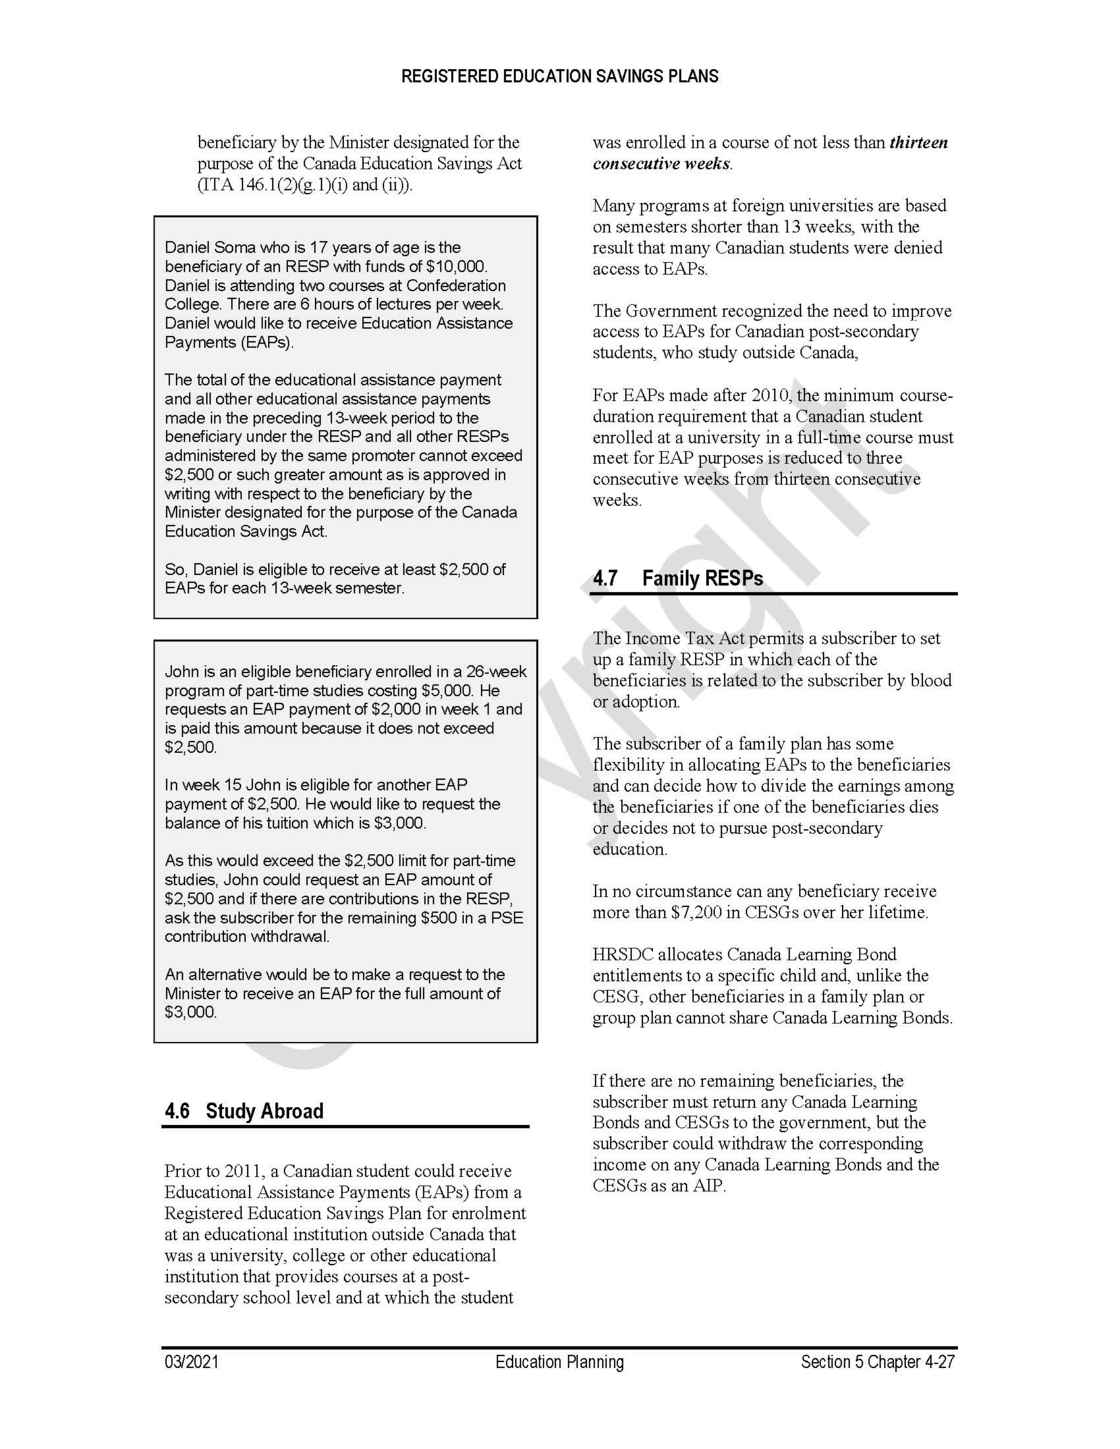 PFP 5-04 RESPs 104 Page_27